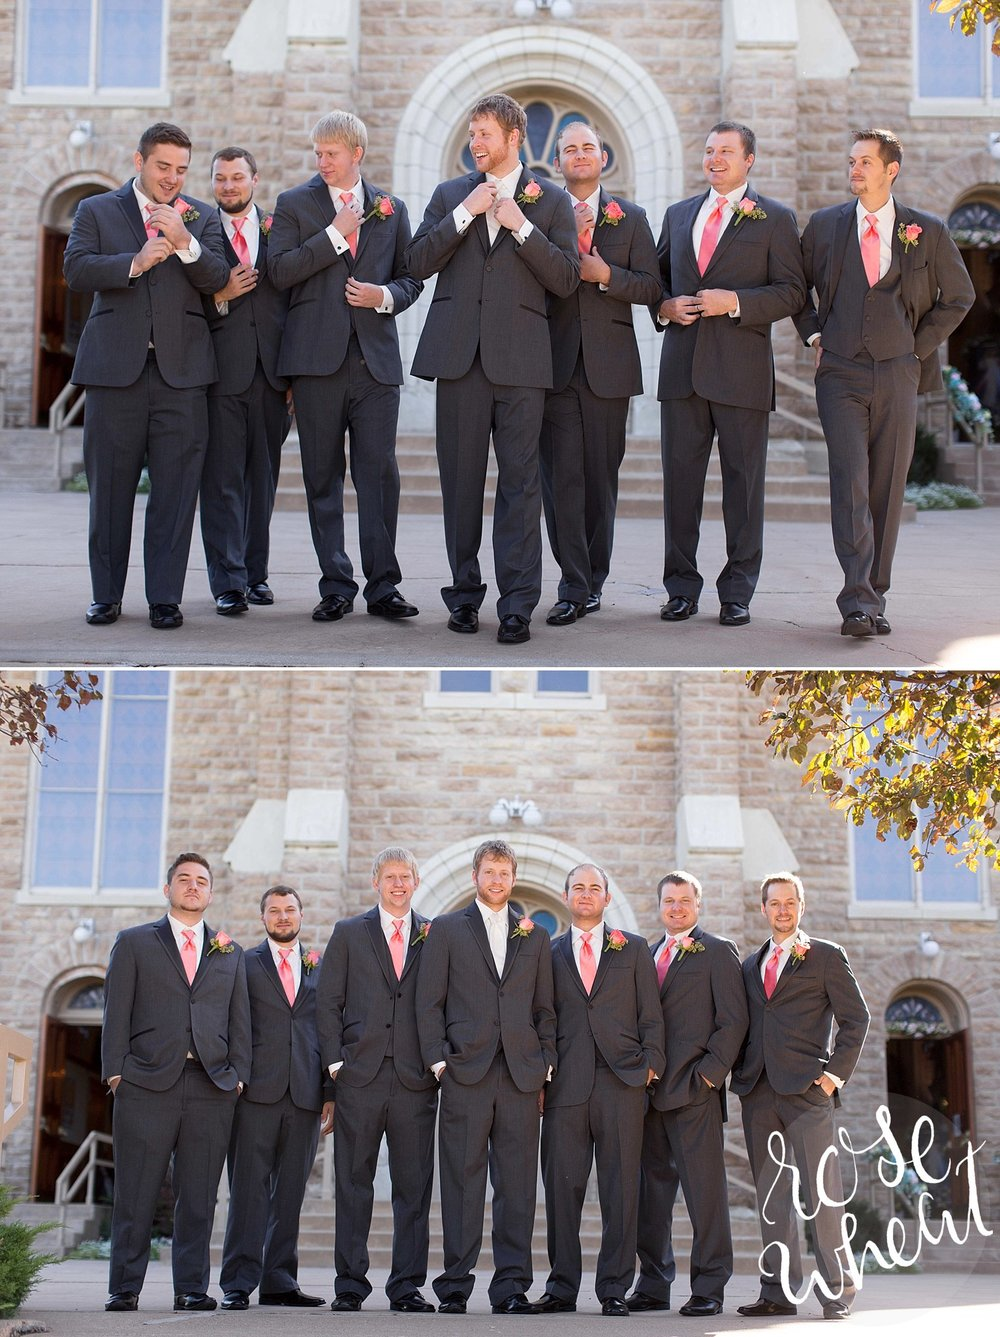 003. groomsmen group posing.JPG